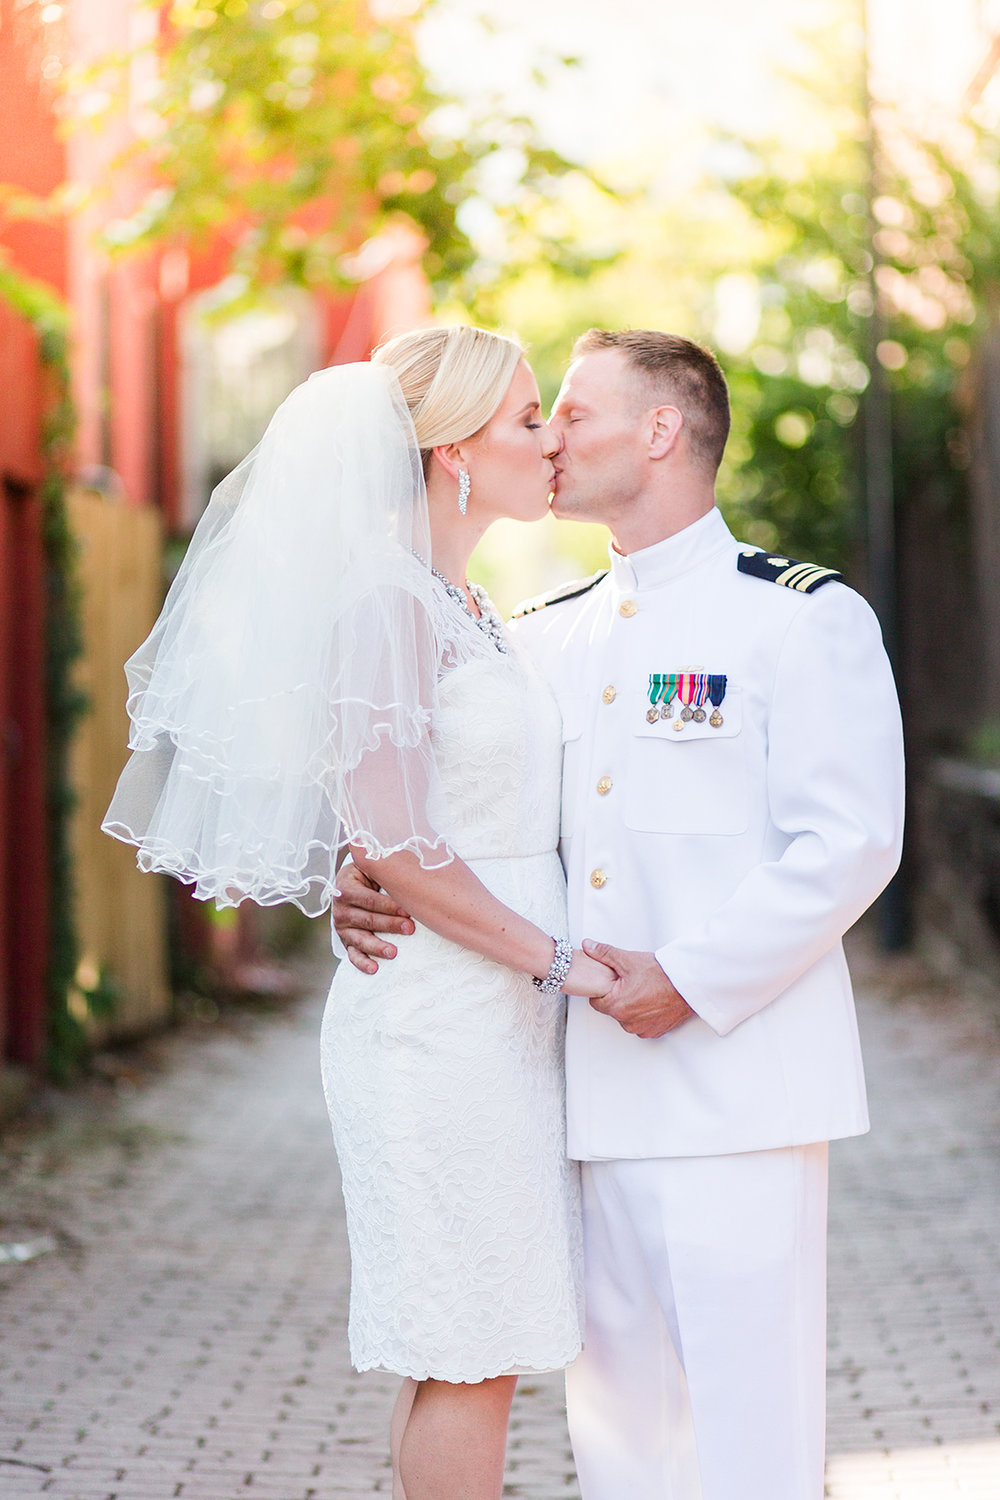 Intimate-Military-Elopement-married-kiss-2.jpg